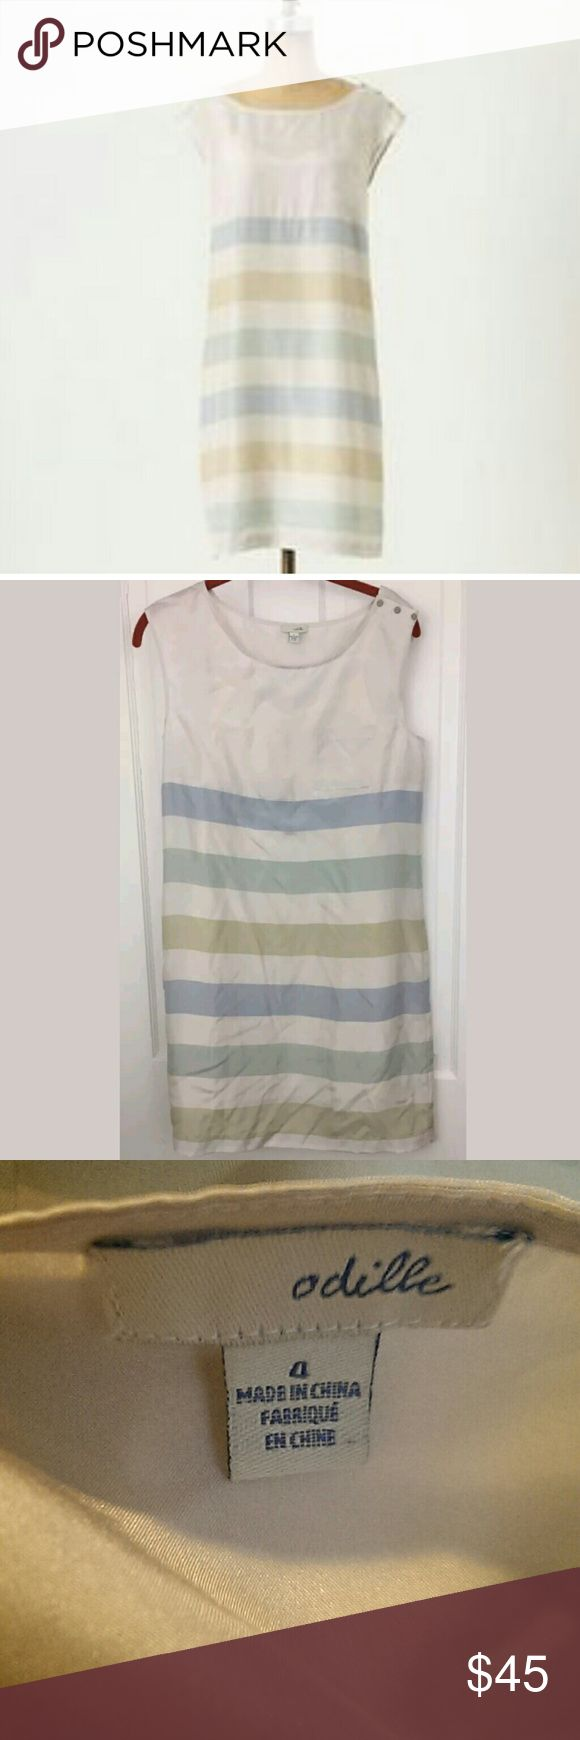 Anthropologie Odille Shore House Shift Dress Odille Shore House Dress Size 4 100% Silk Pastel Stripes Excellent Condition Anthropologie Dresses Midi